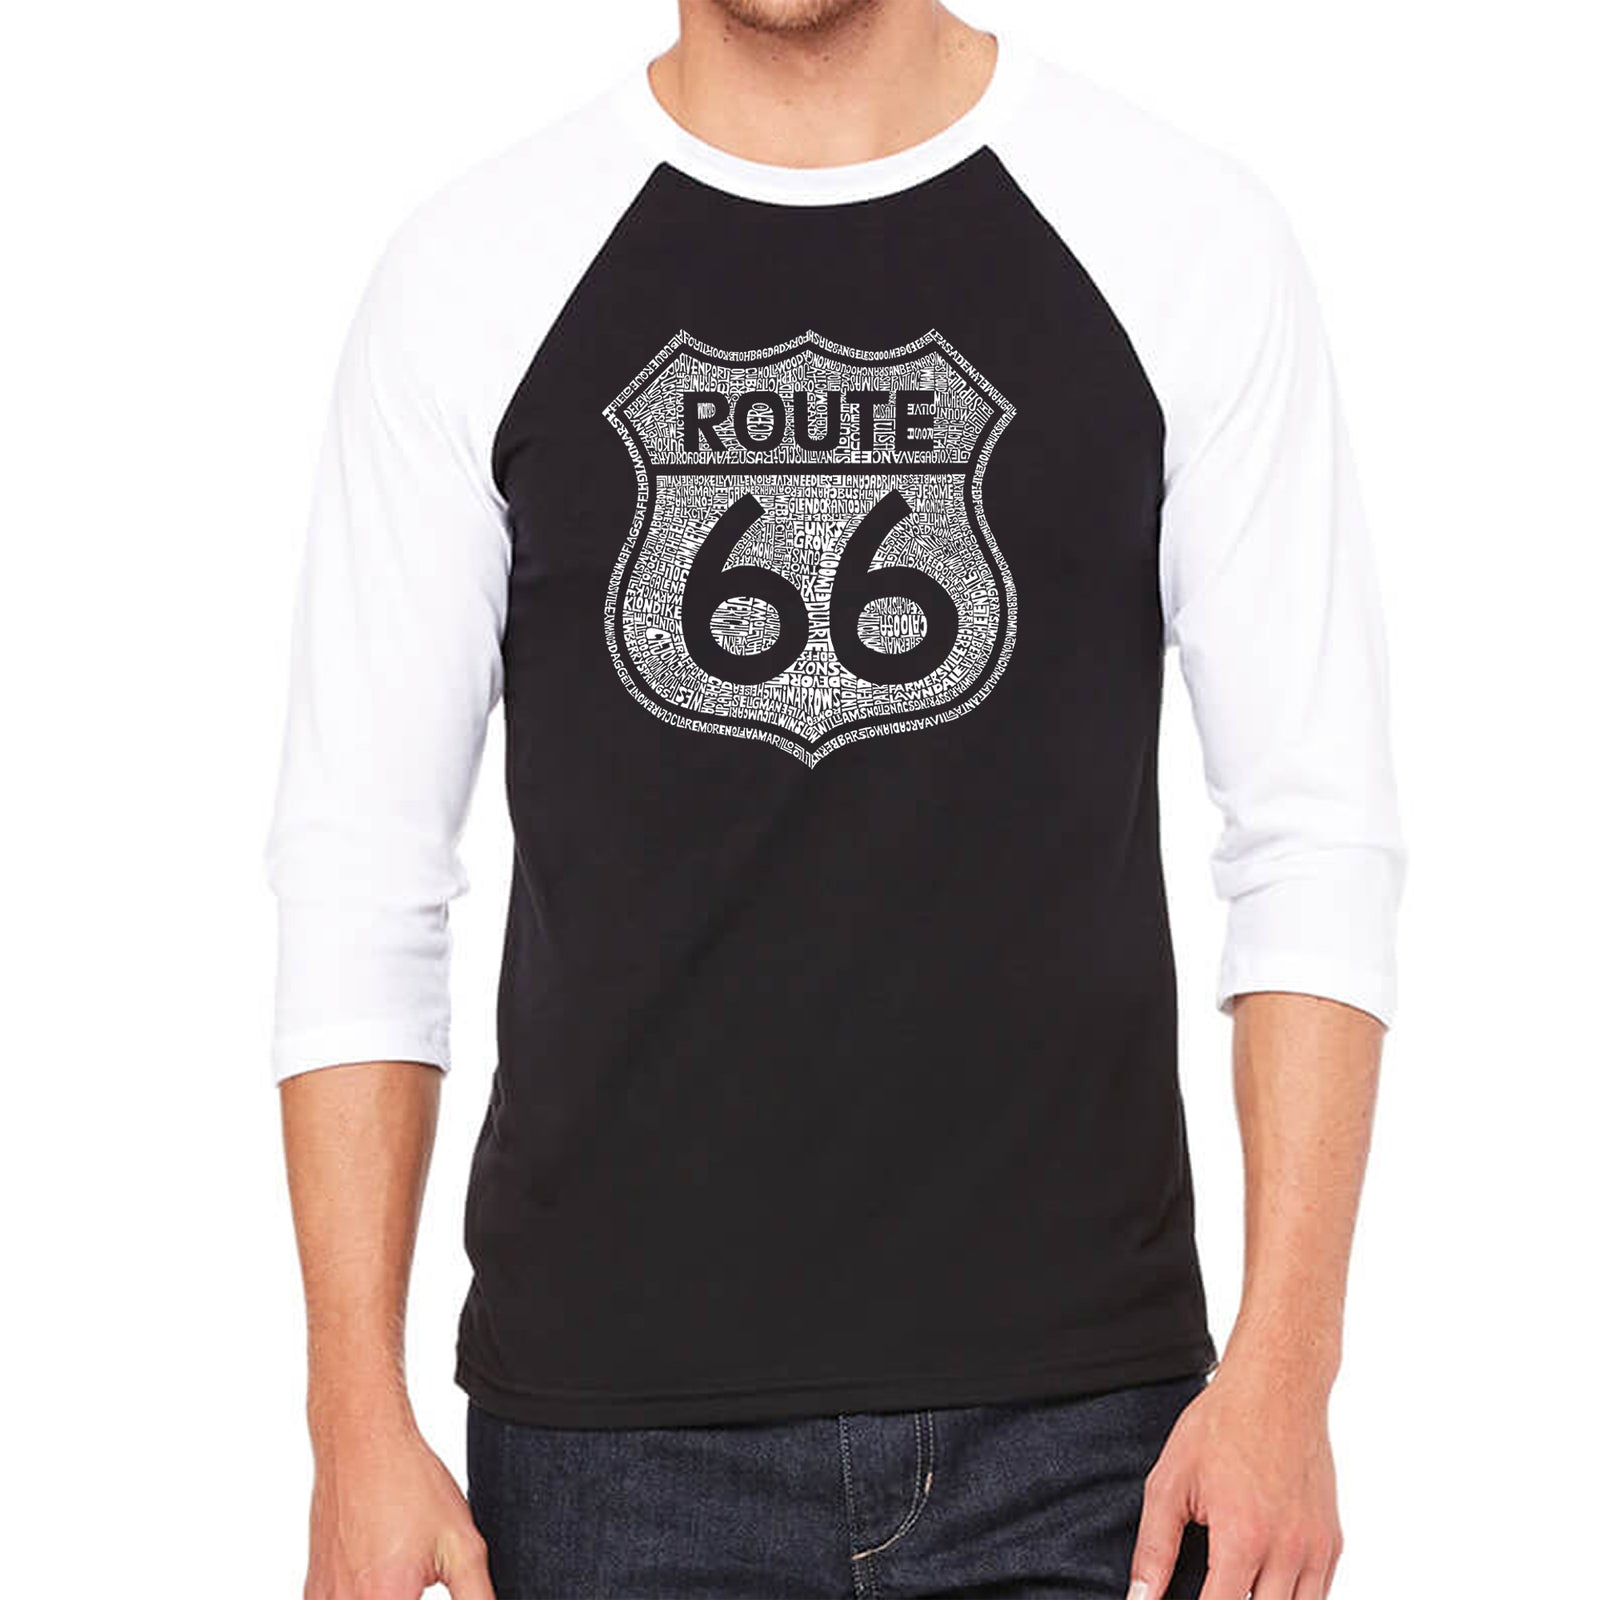 Men's Raglan Baseball Word Art T-shirt - CITIES ALONG THE LEGENDARY ROUTE 66